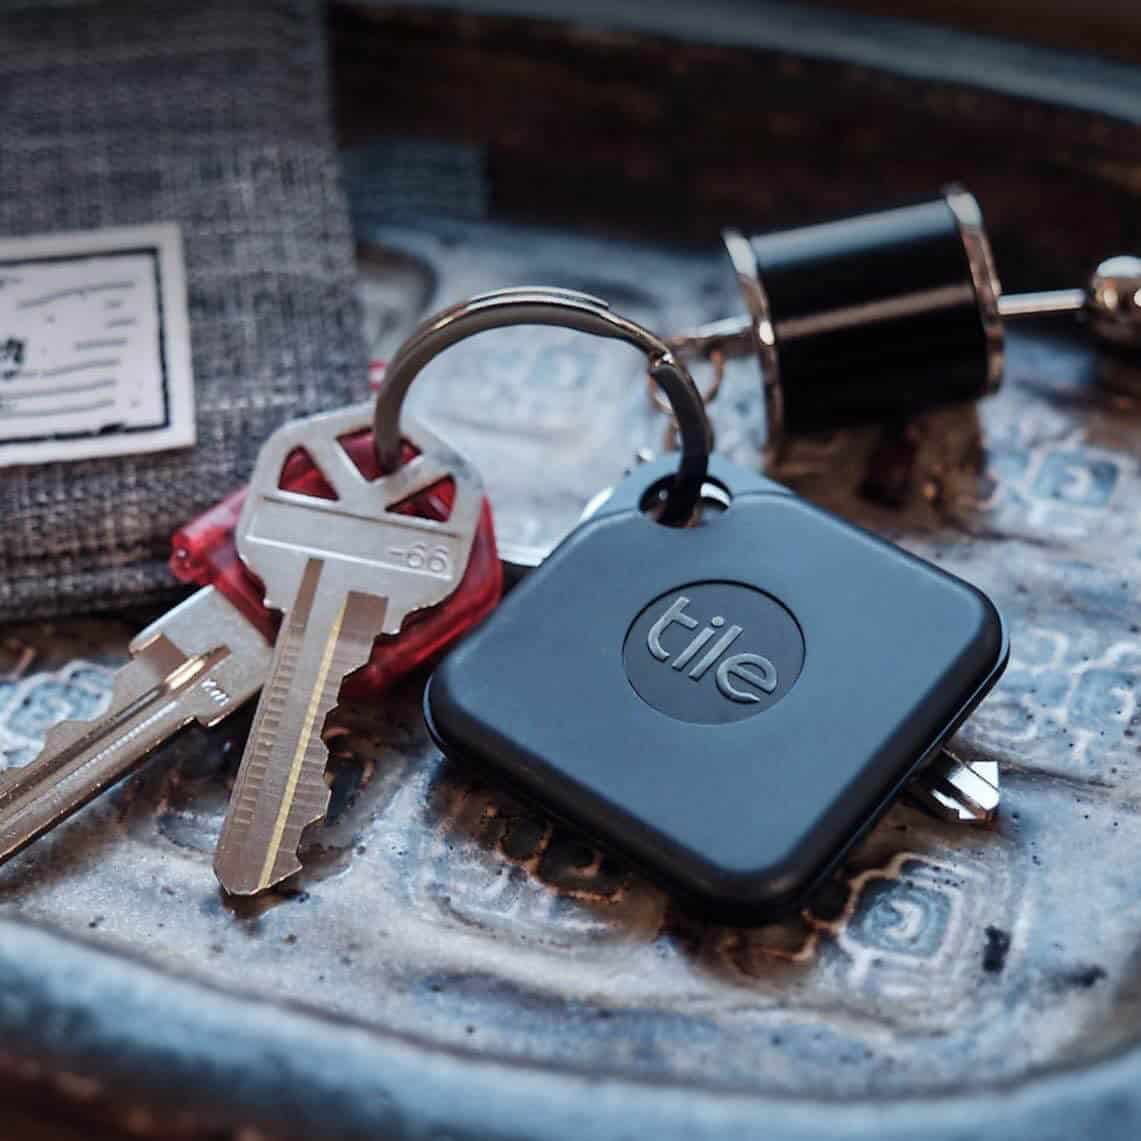 Tile Pro (2020) Key Finder